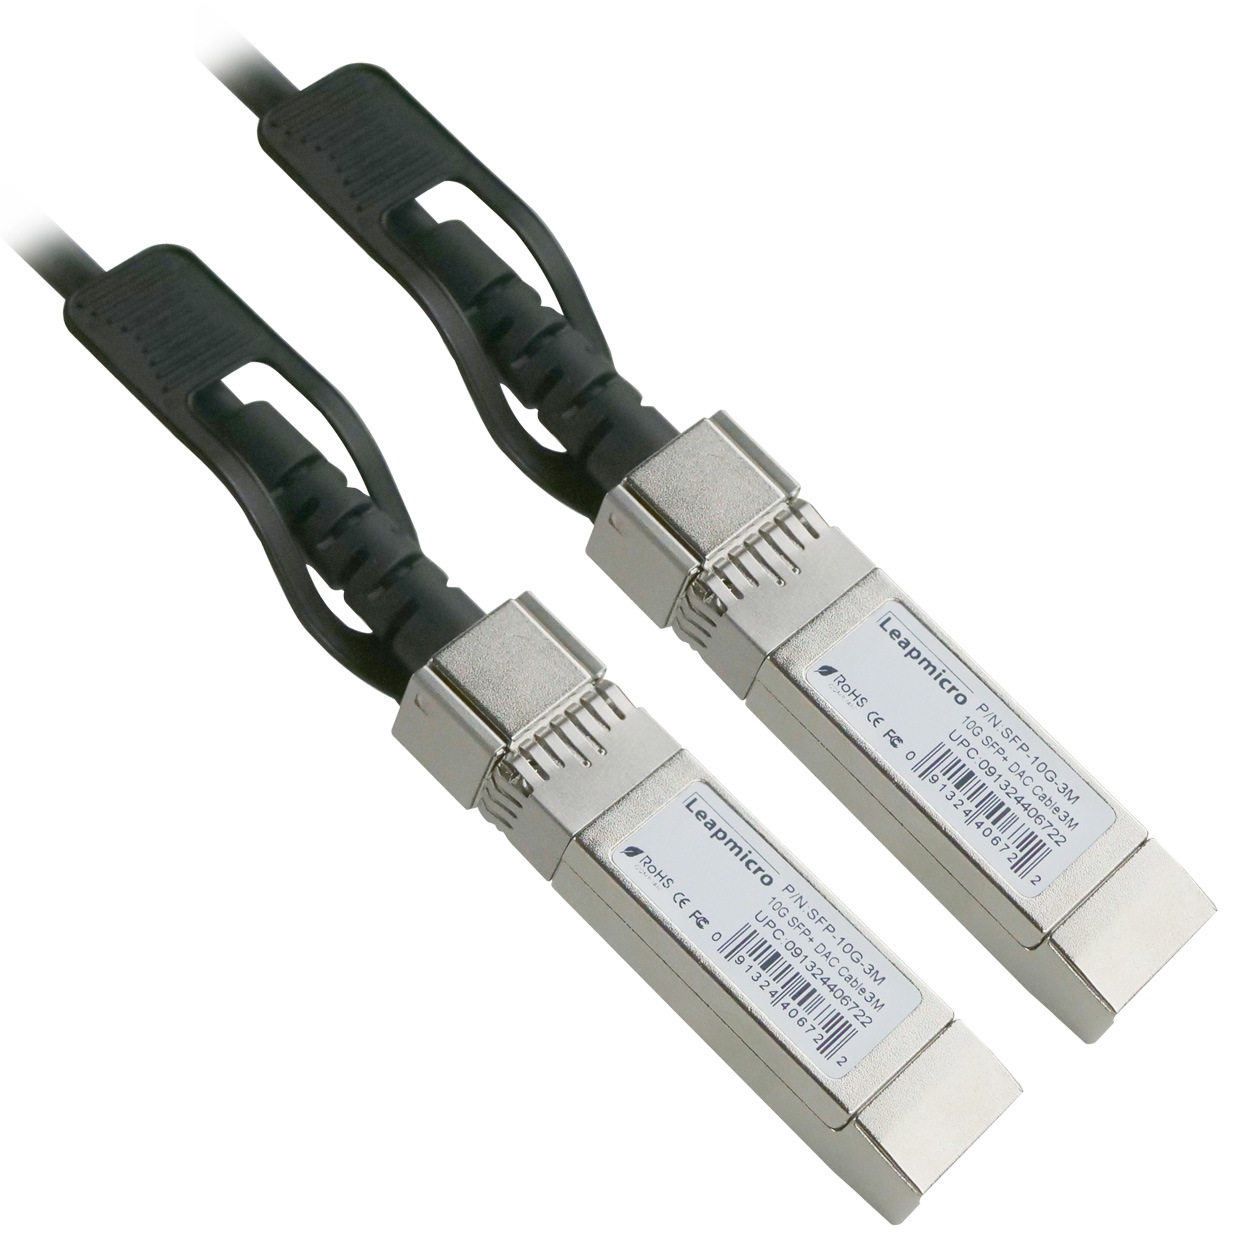 Cisco SFP-H10GB-CU3M Compatible 10GBASE-CU SFP+ Passive Direct Attach Copper Cable 3 Meter, 30AWG